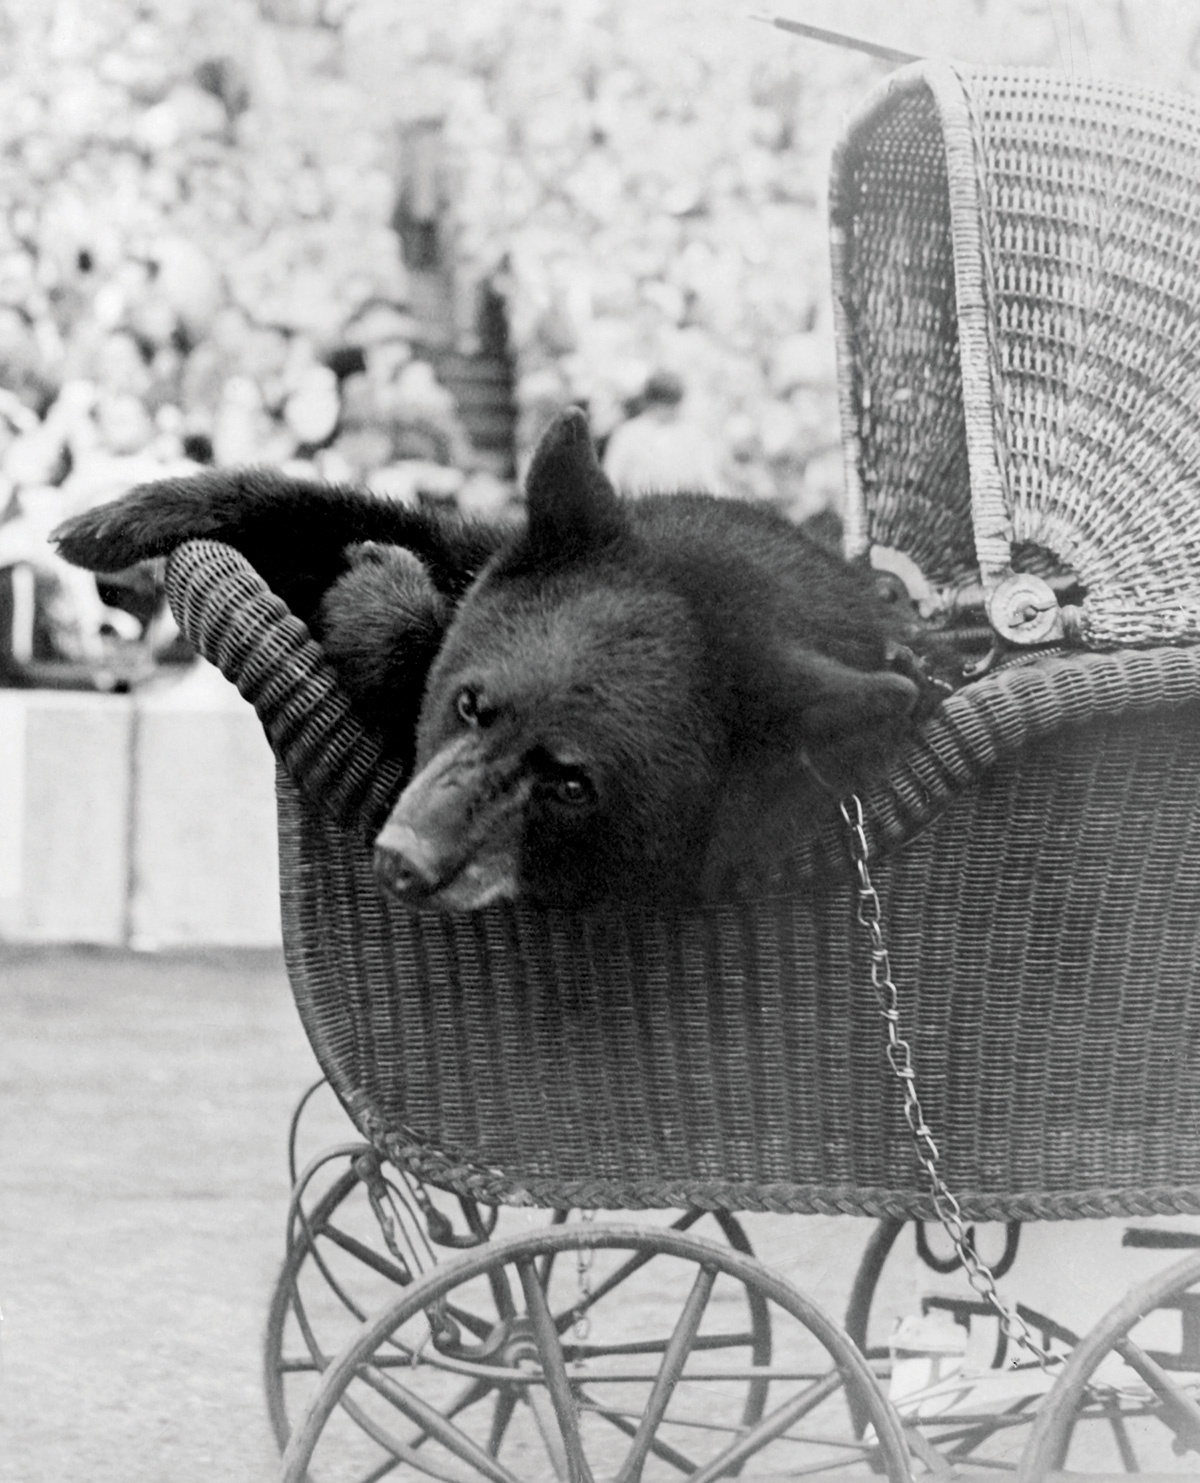 A vintage photograph of a bear in a baby carriage, from 1948.